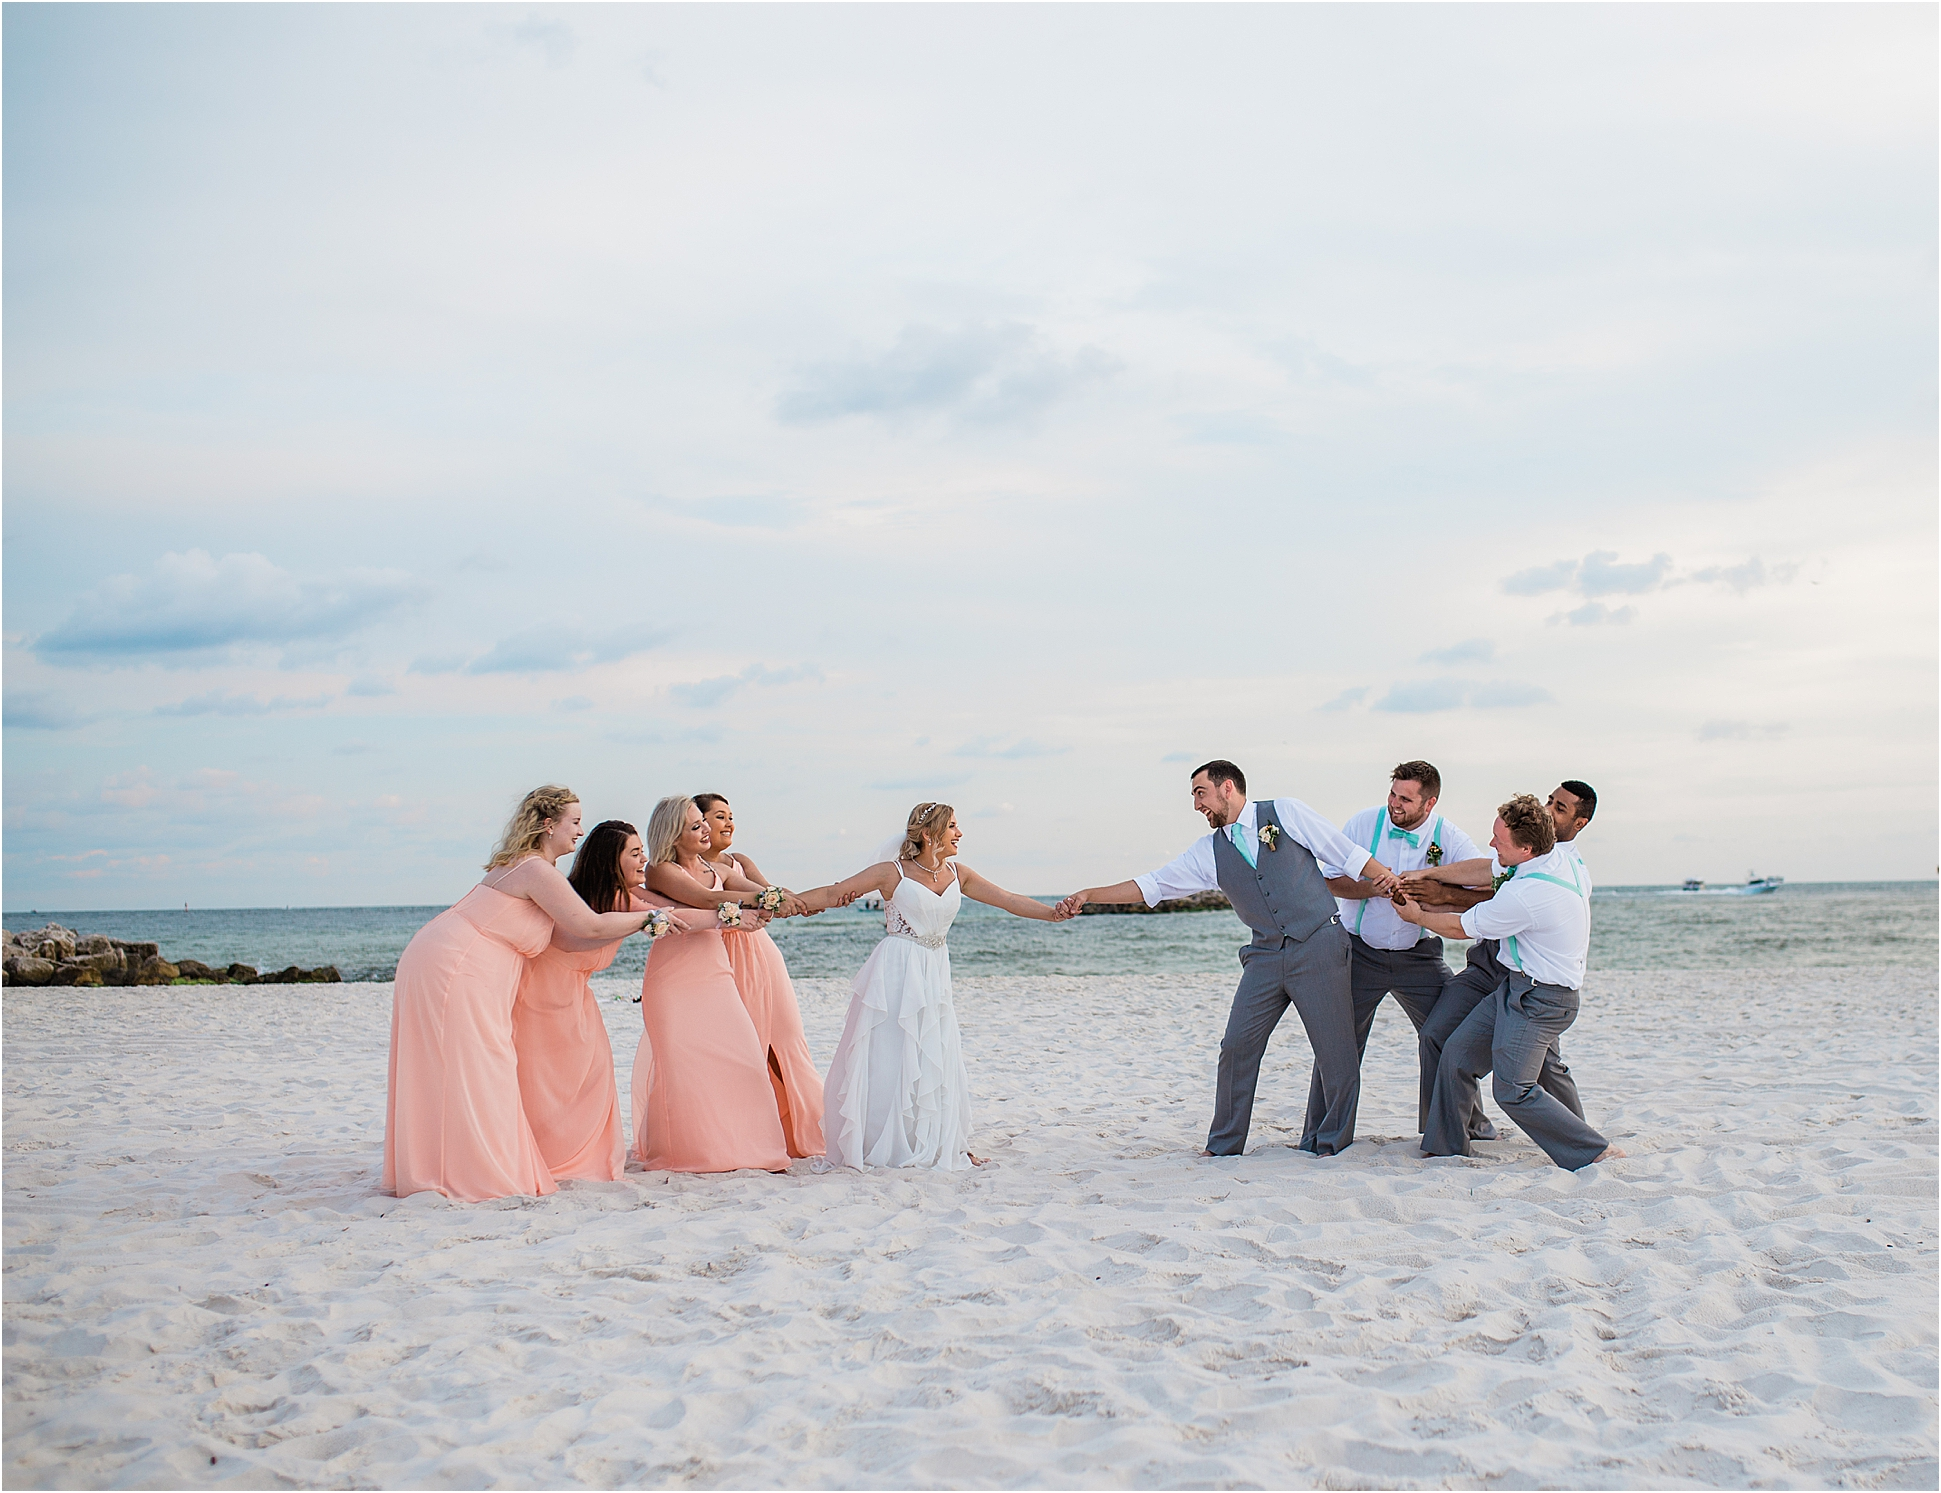 Where to rent a wedding arch in Gulf Shores?